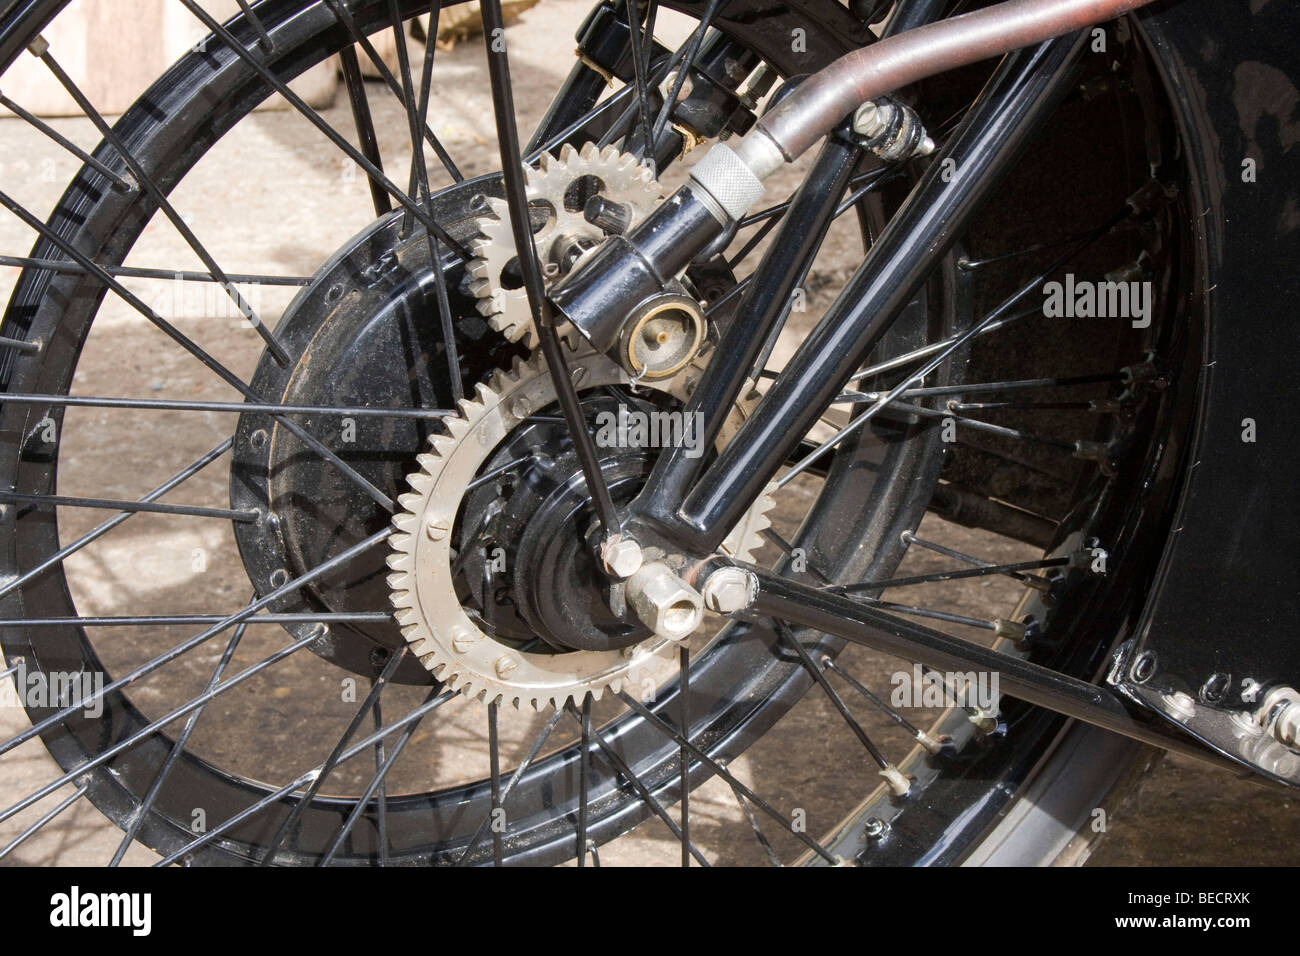 The Wheel With Speedometer Drive Of A 1920s Bsa Motorcycle